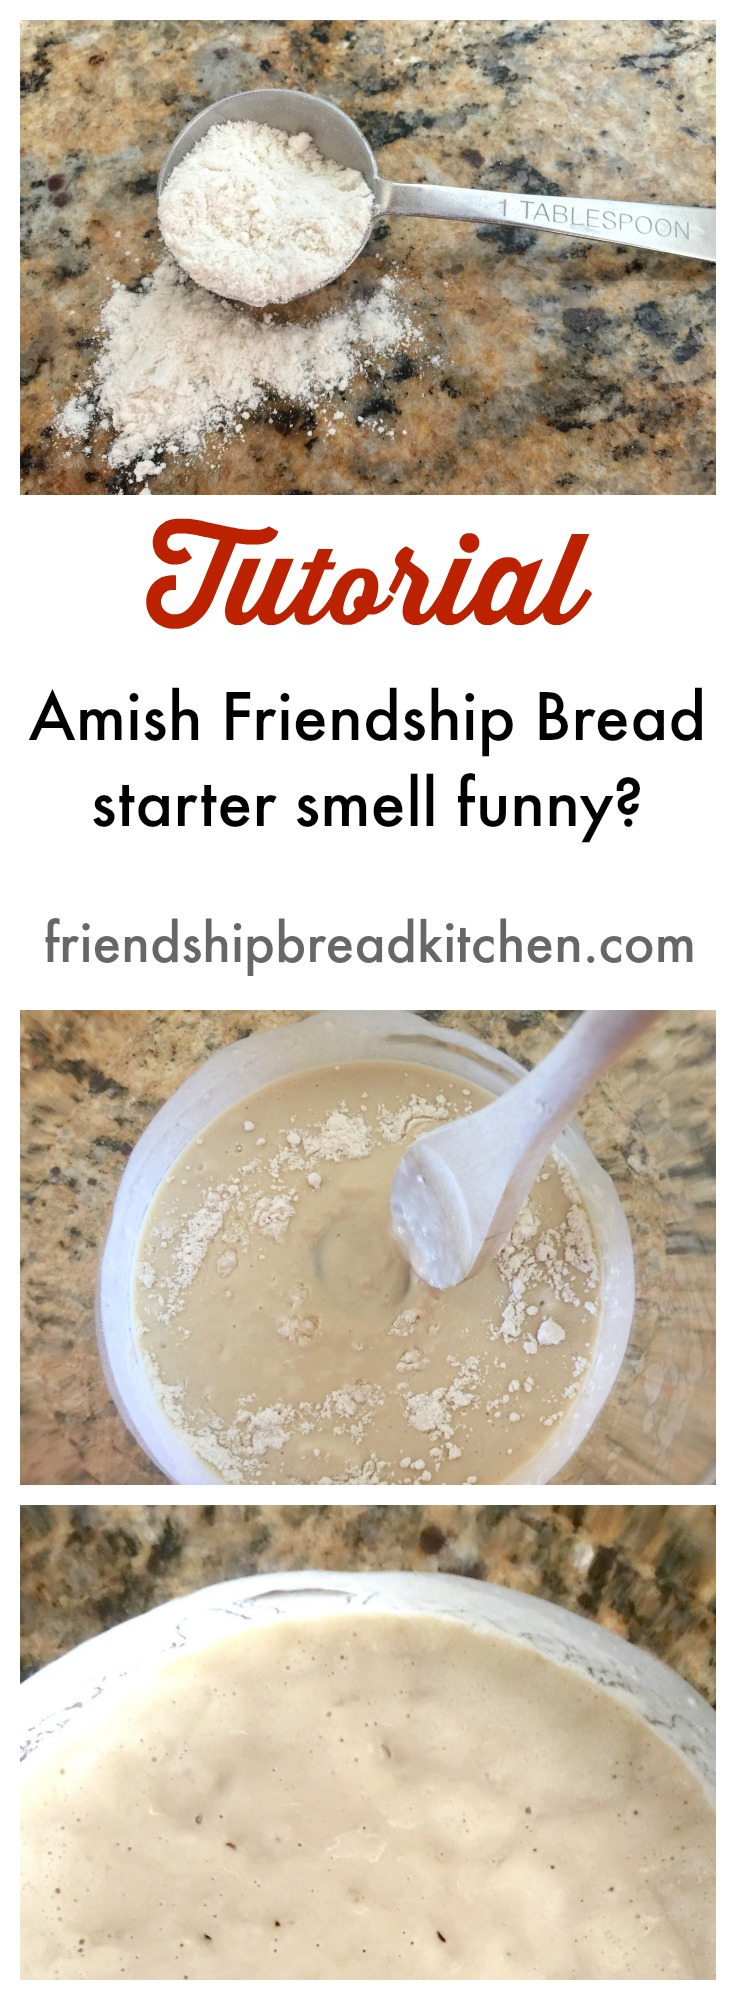 Amish Friendship Bread Starter Tutorial ♥ friendshipbreadkitchen.com